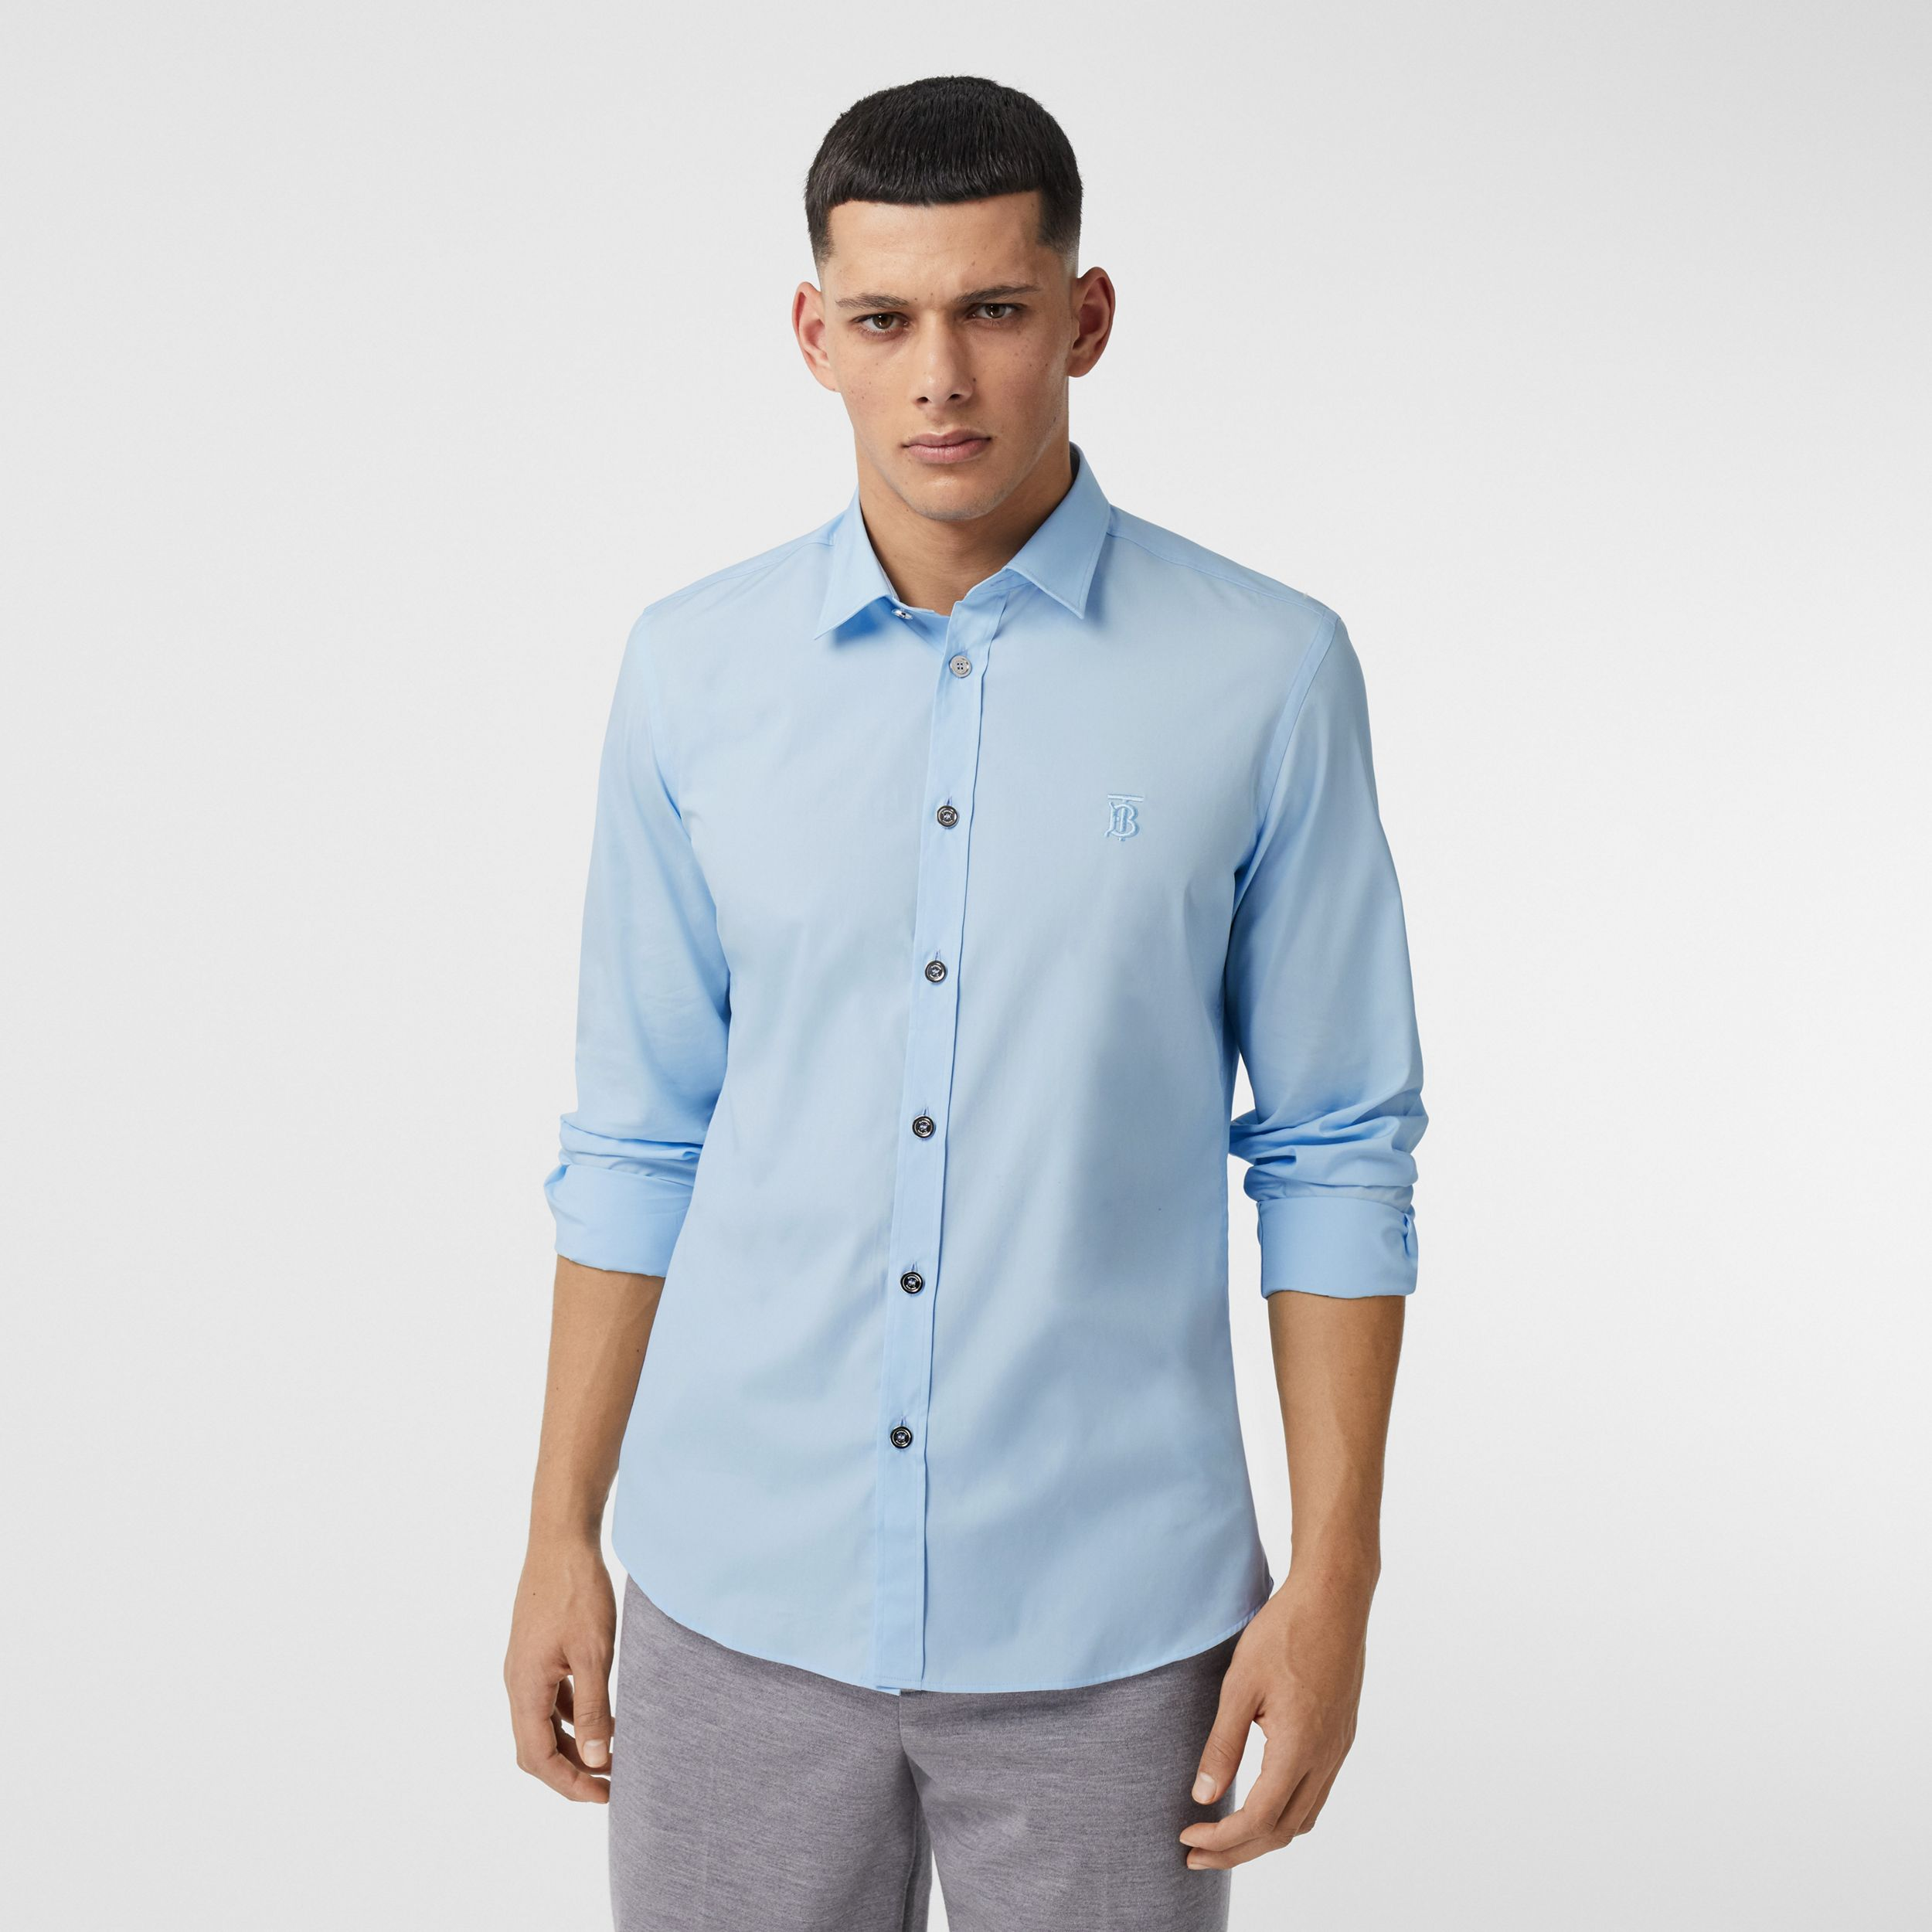 Monogram Motif Stretch Cotton Poplin Shirt in Pale Blue - Men | Burberry - 1